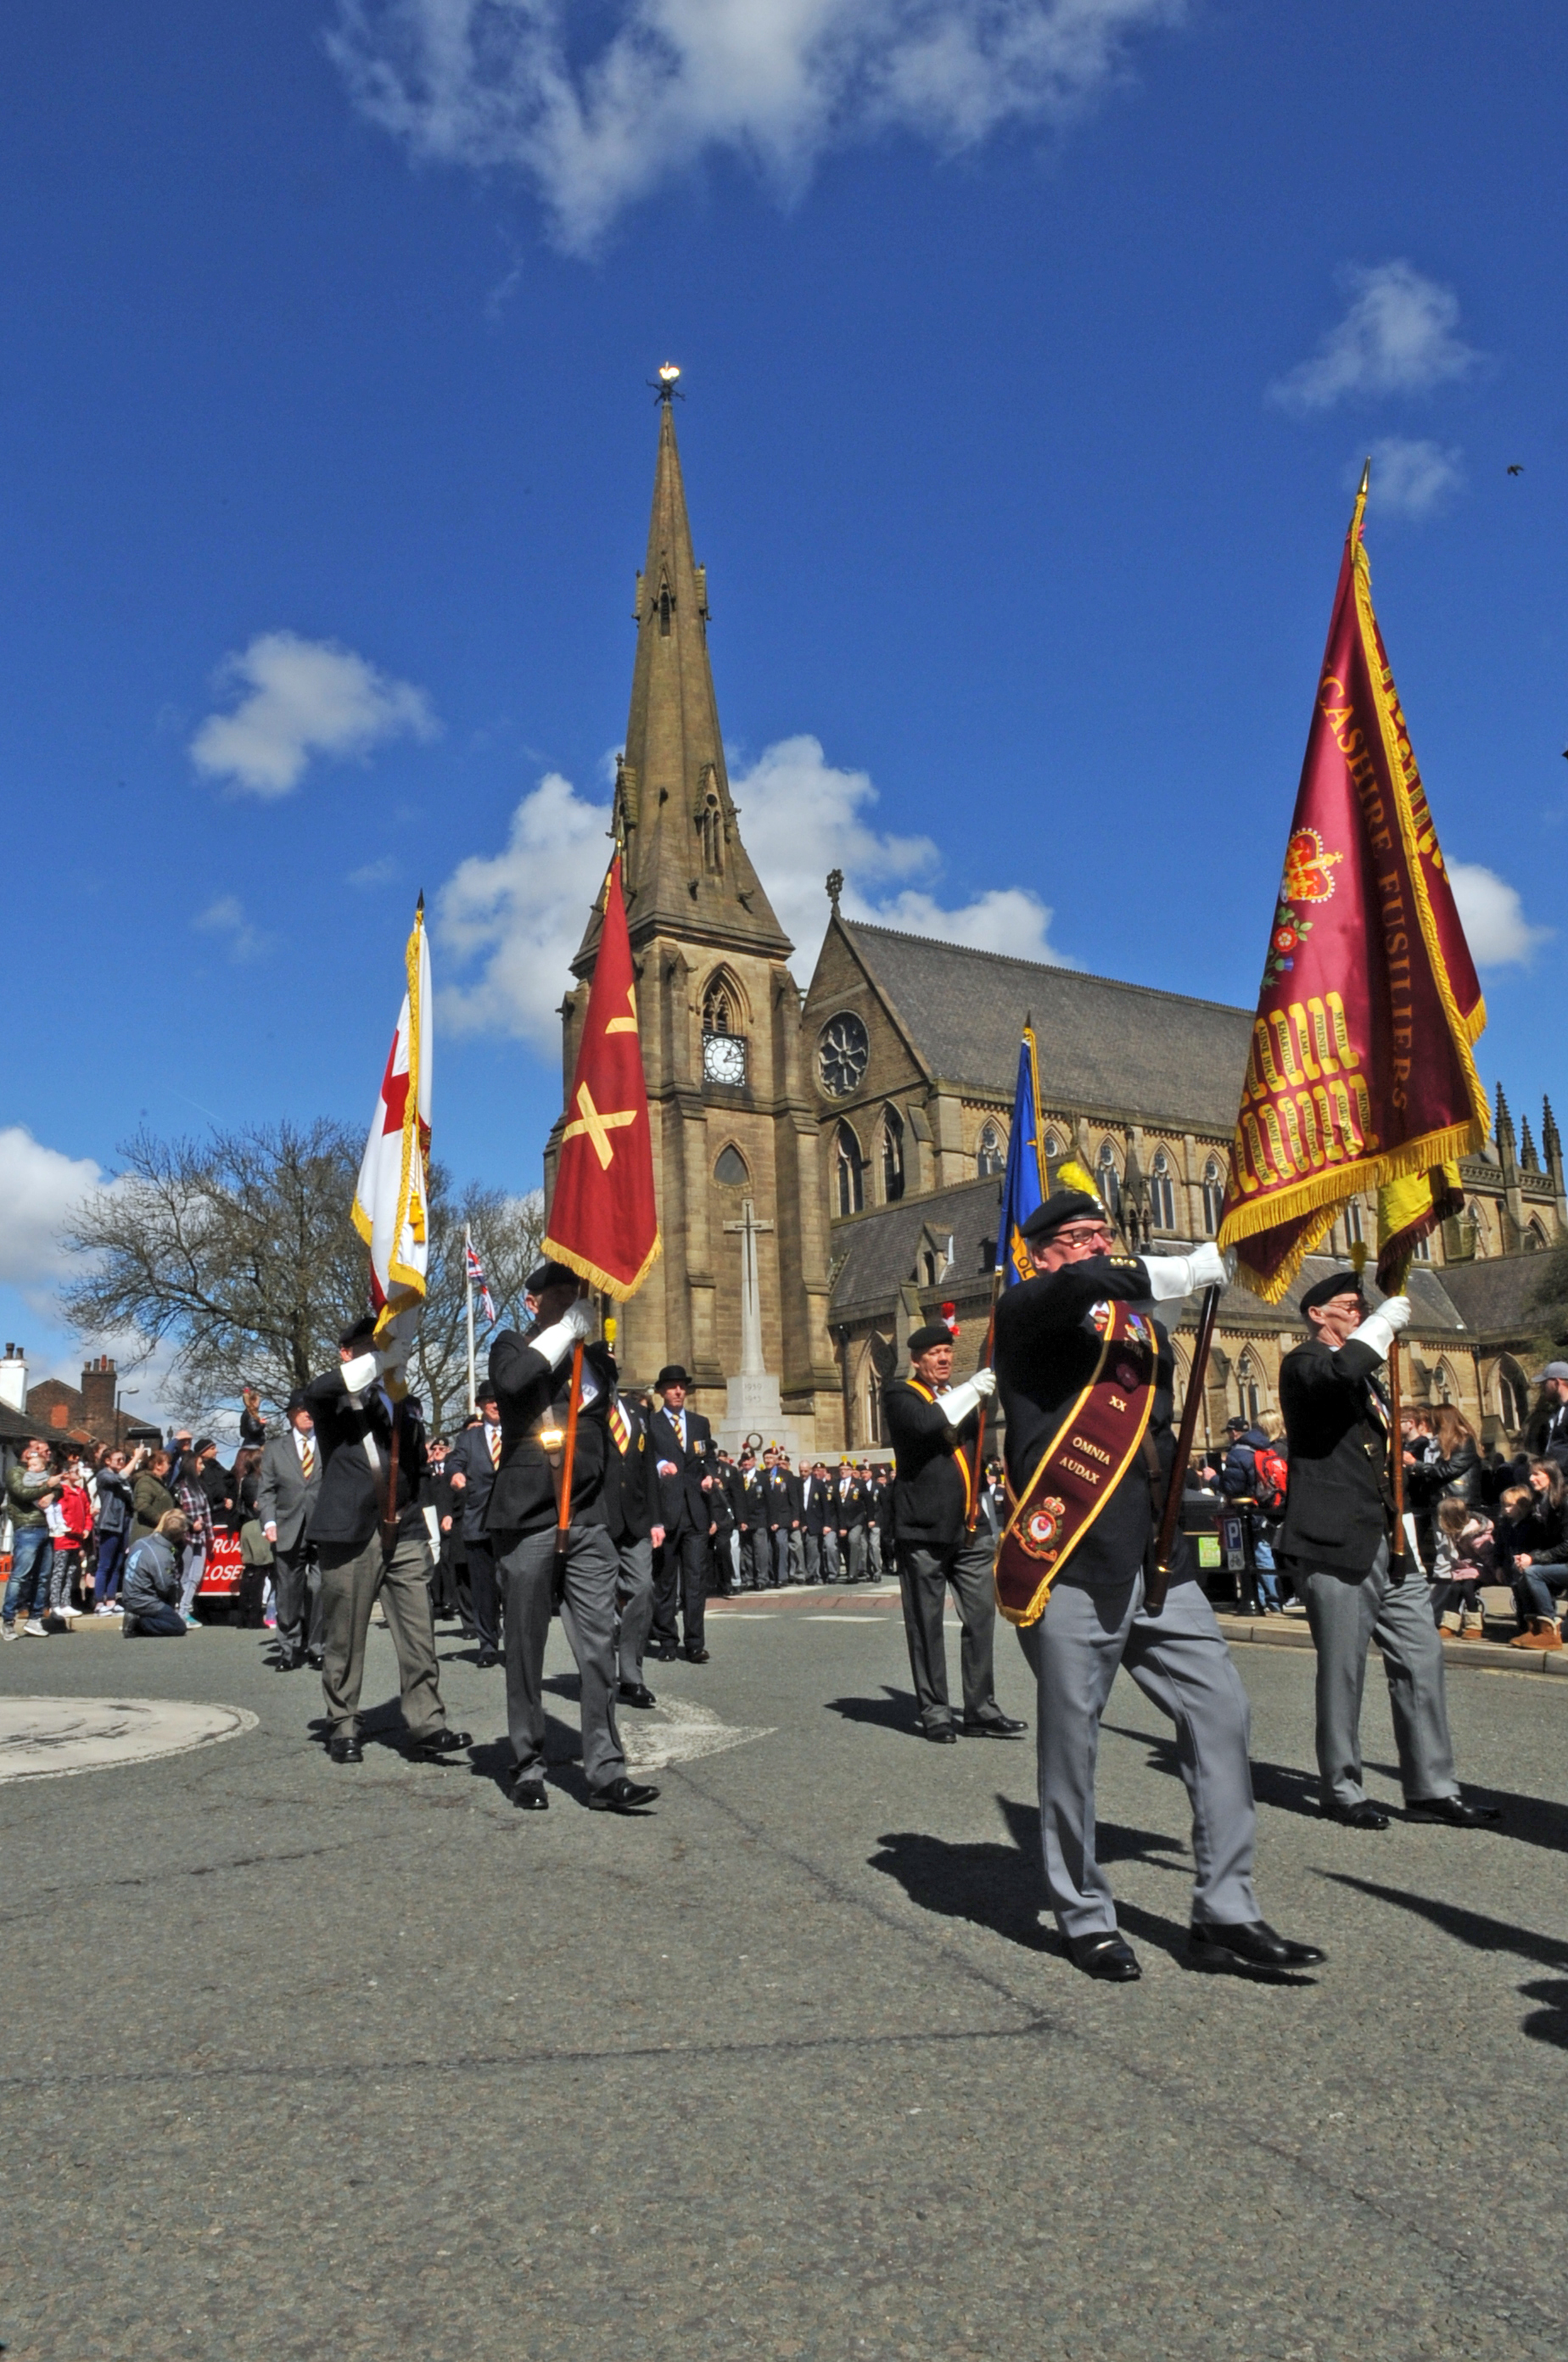 Memorial honouring the Lancashire Fusiliers unveiled at the Gallipoli commemorations